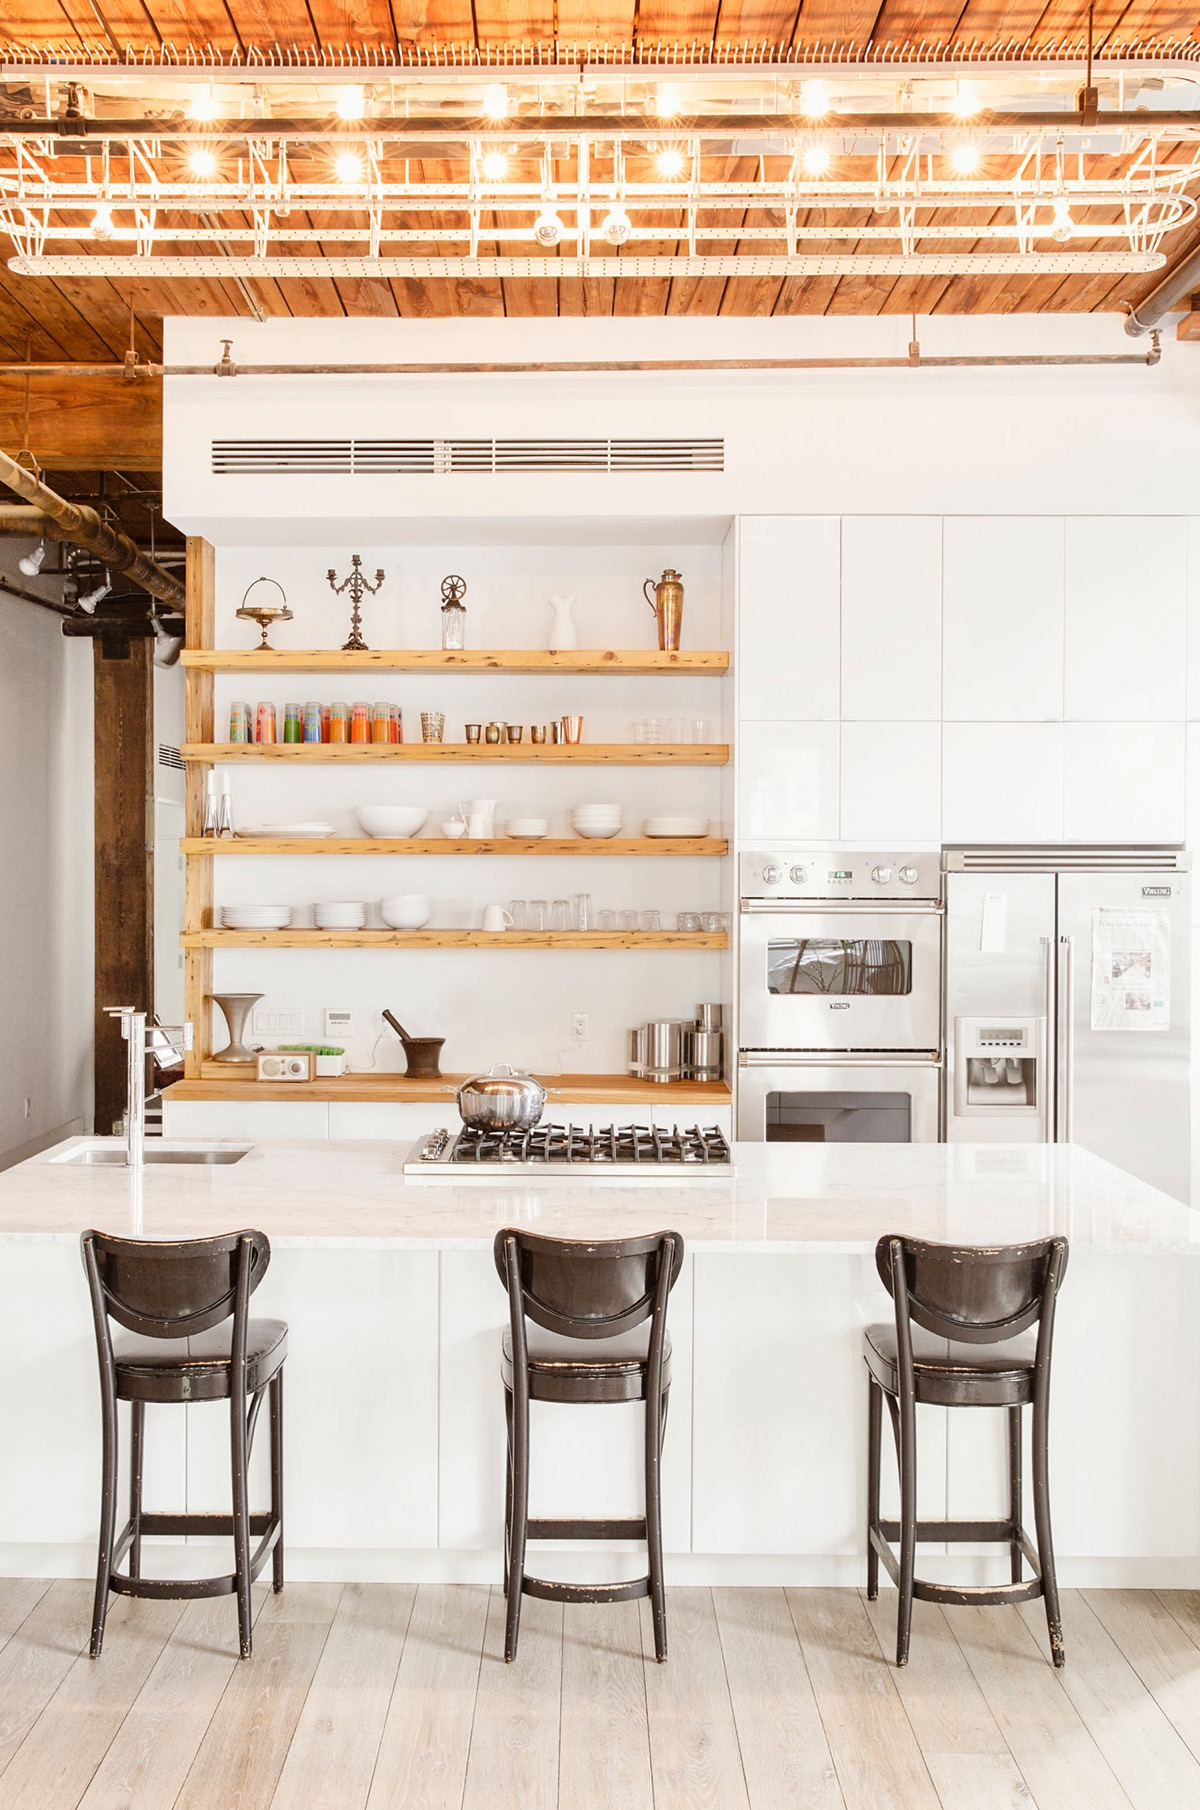 Williamsburg-style-kitchen-wooden-open-shelving